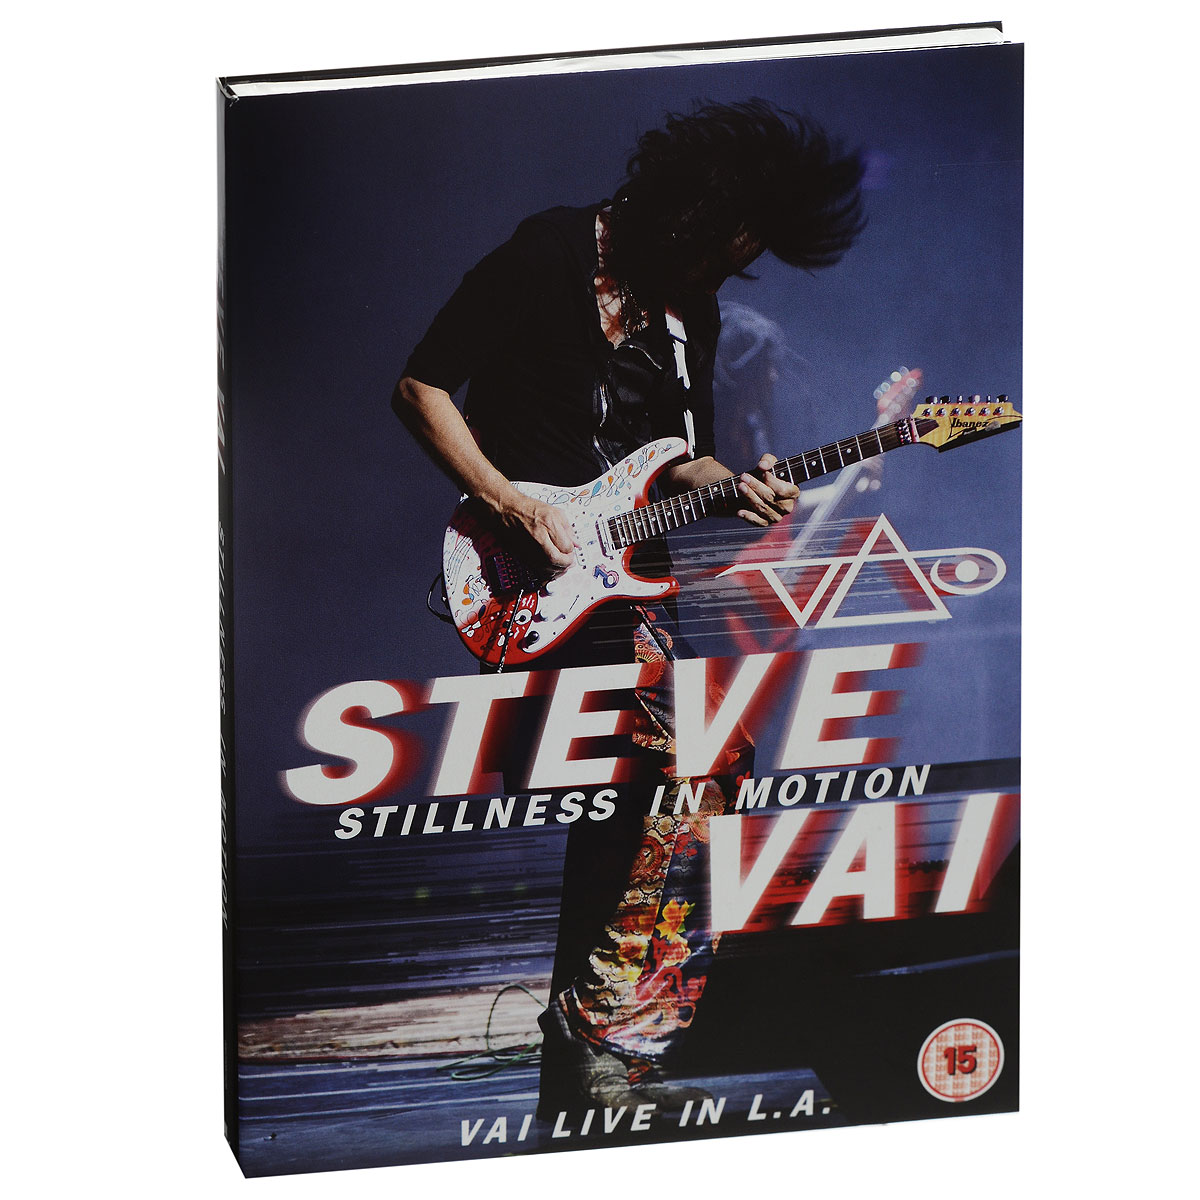 Steve Vai. Stillness In Motion. Vai Live In L.A. (2 DVD) tvxq special live tour t1st0ry in seoul kpop album